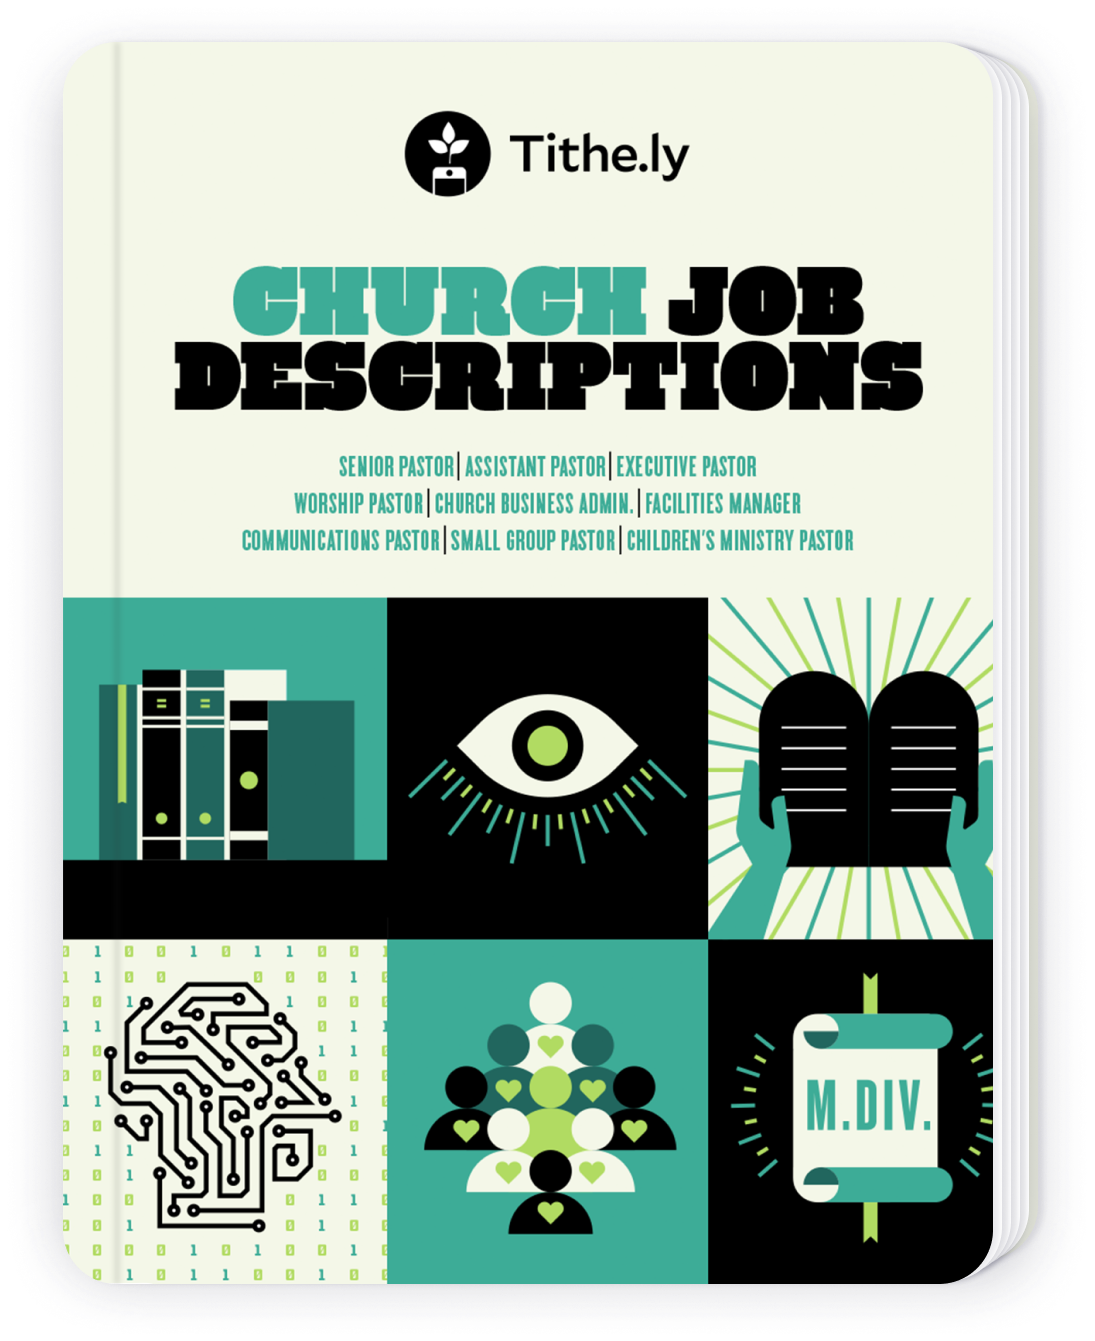 Attract better candidates, simplify hiring, and save time with these ready-to-use church job descriptions.